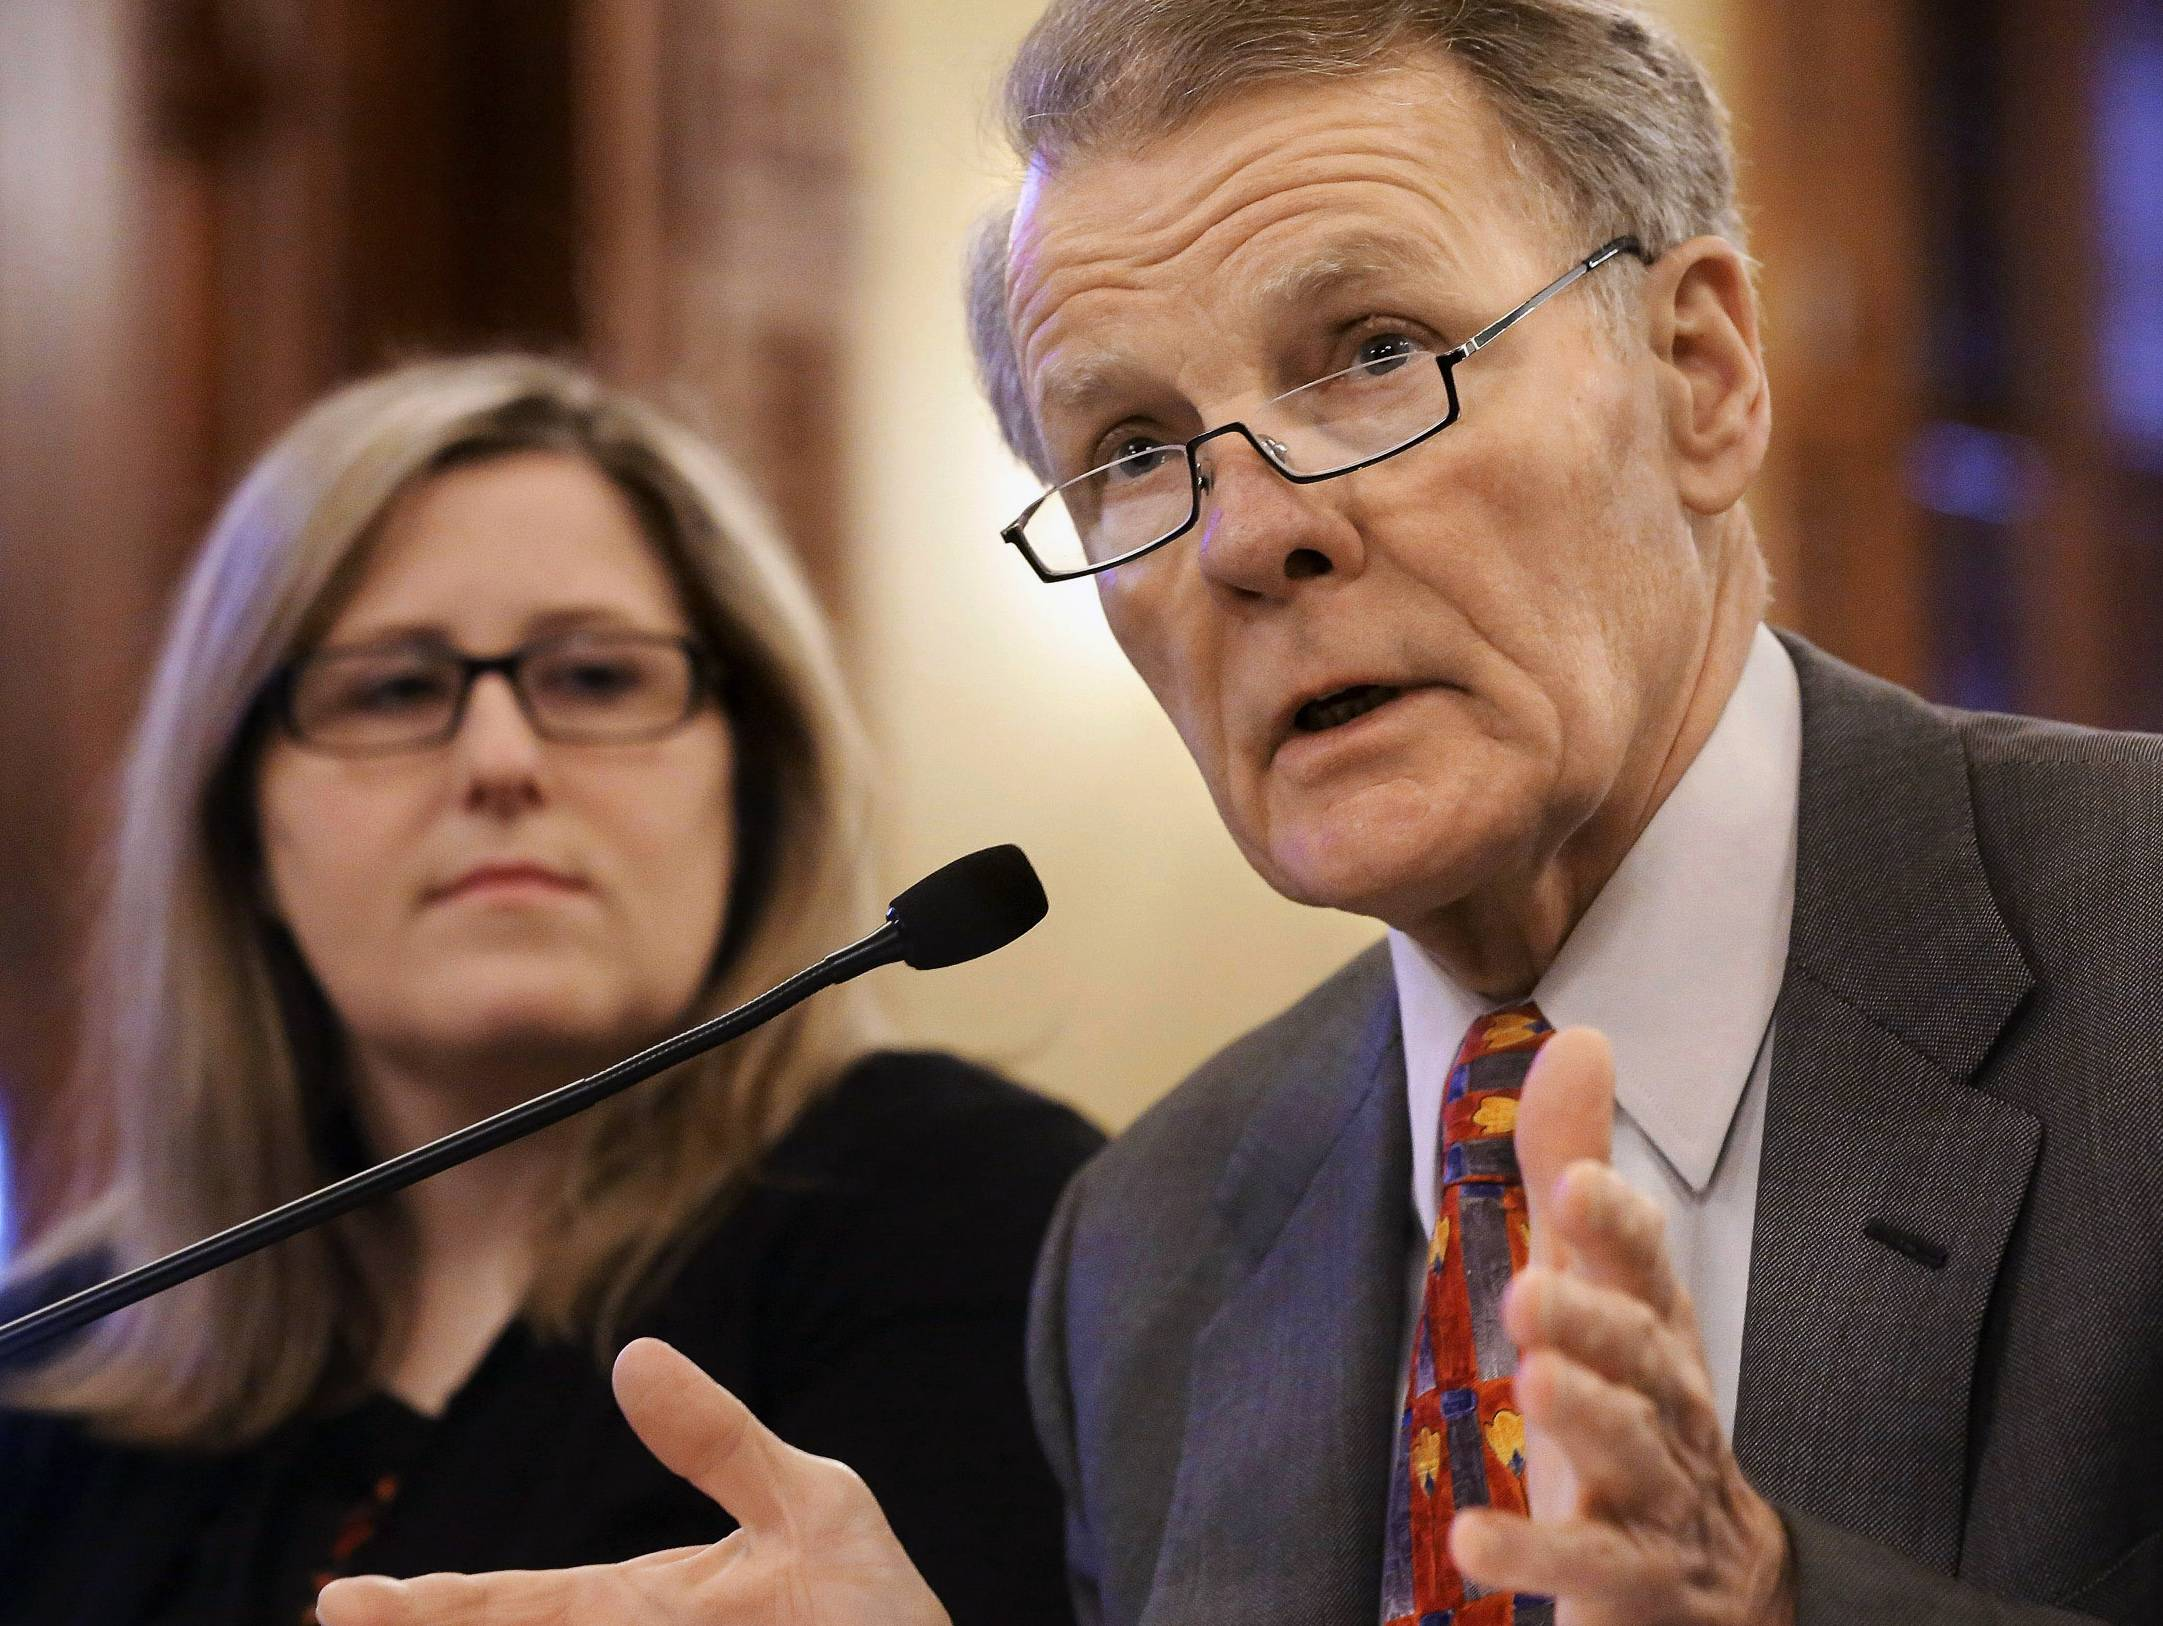 Illinois House Speaker Michael Madigan has criticized a proposed redistricting referendum as an attempt by Republicans grab power.